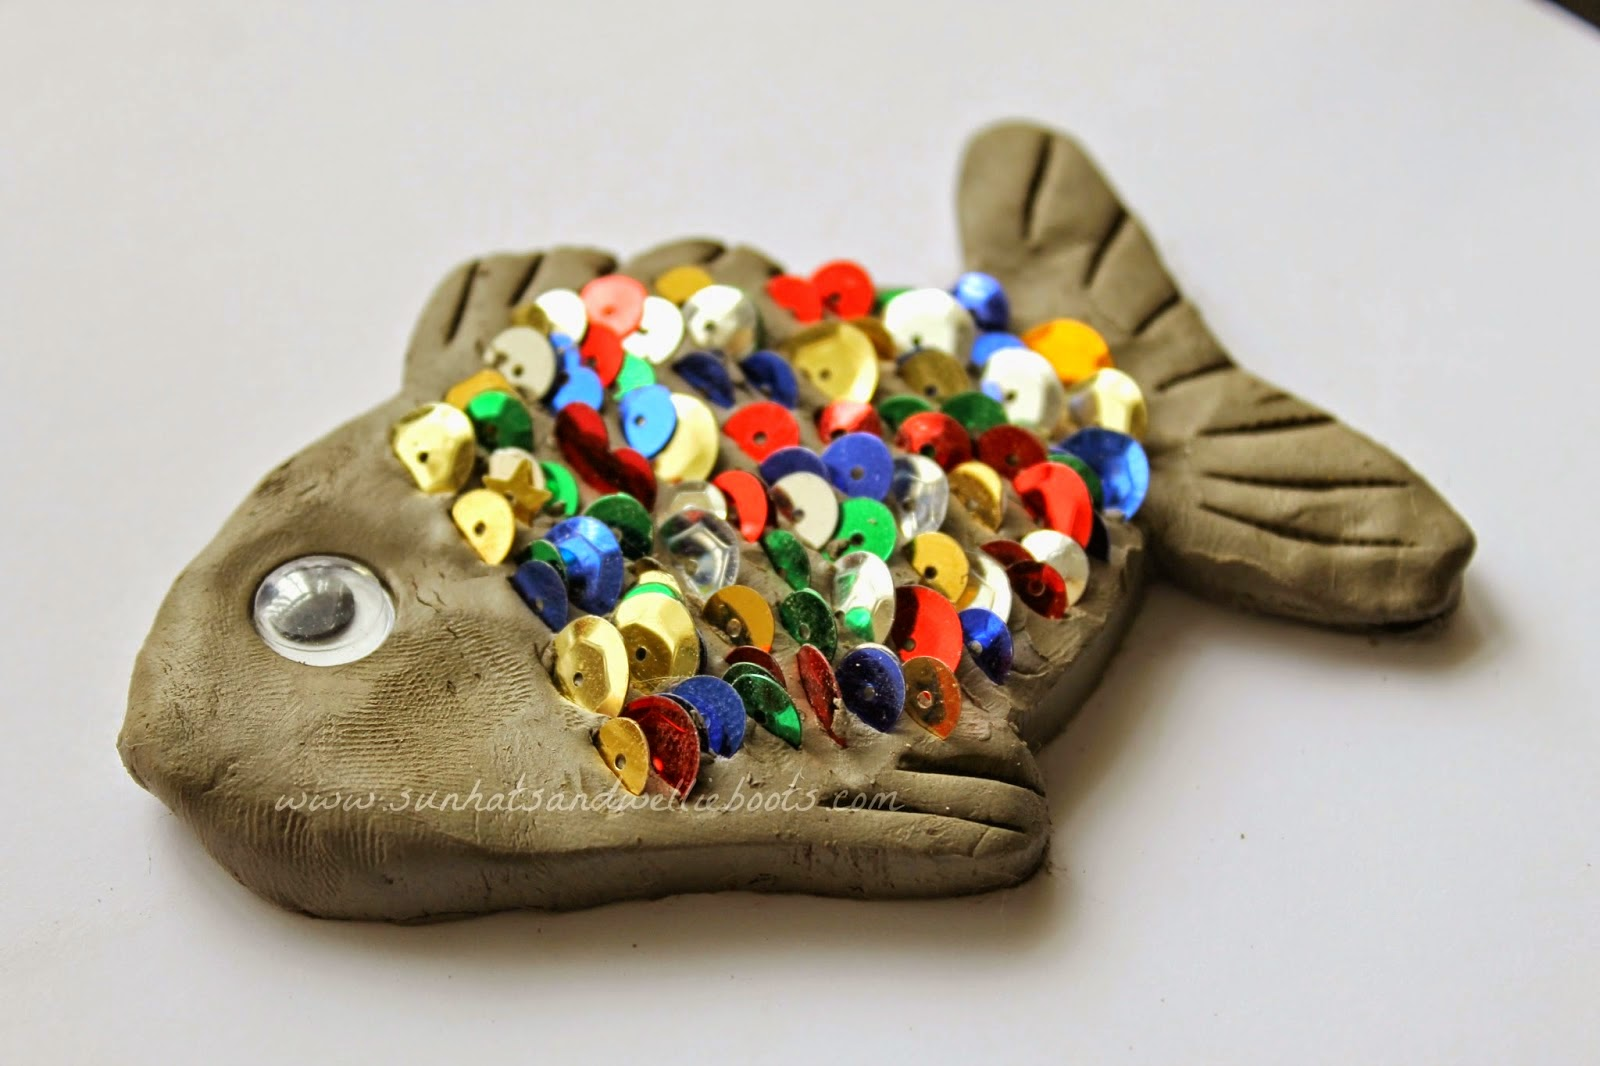 sequin rainbow fish crafty activity clay from sun hats and wellie boots